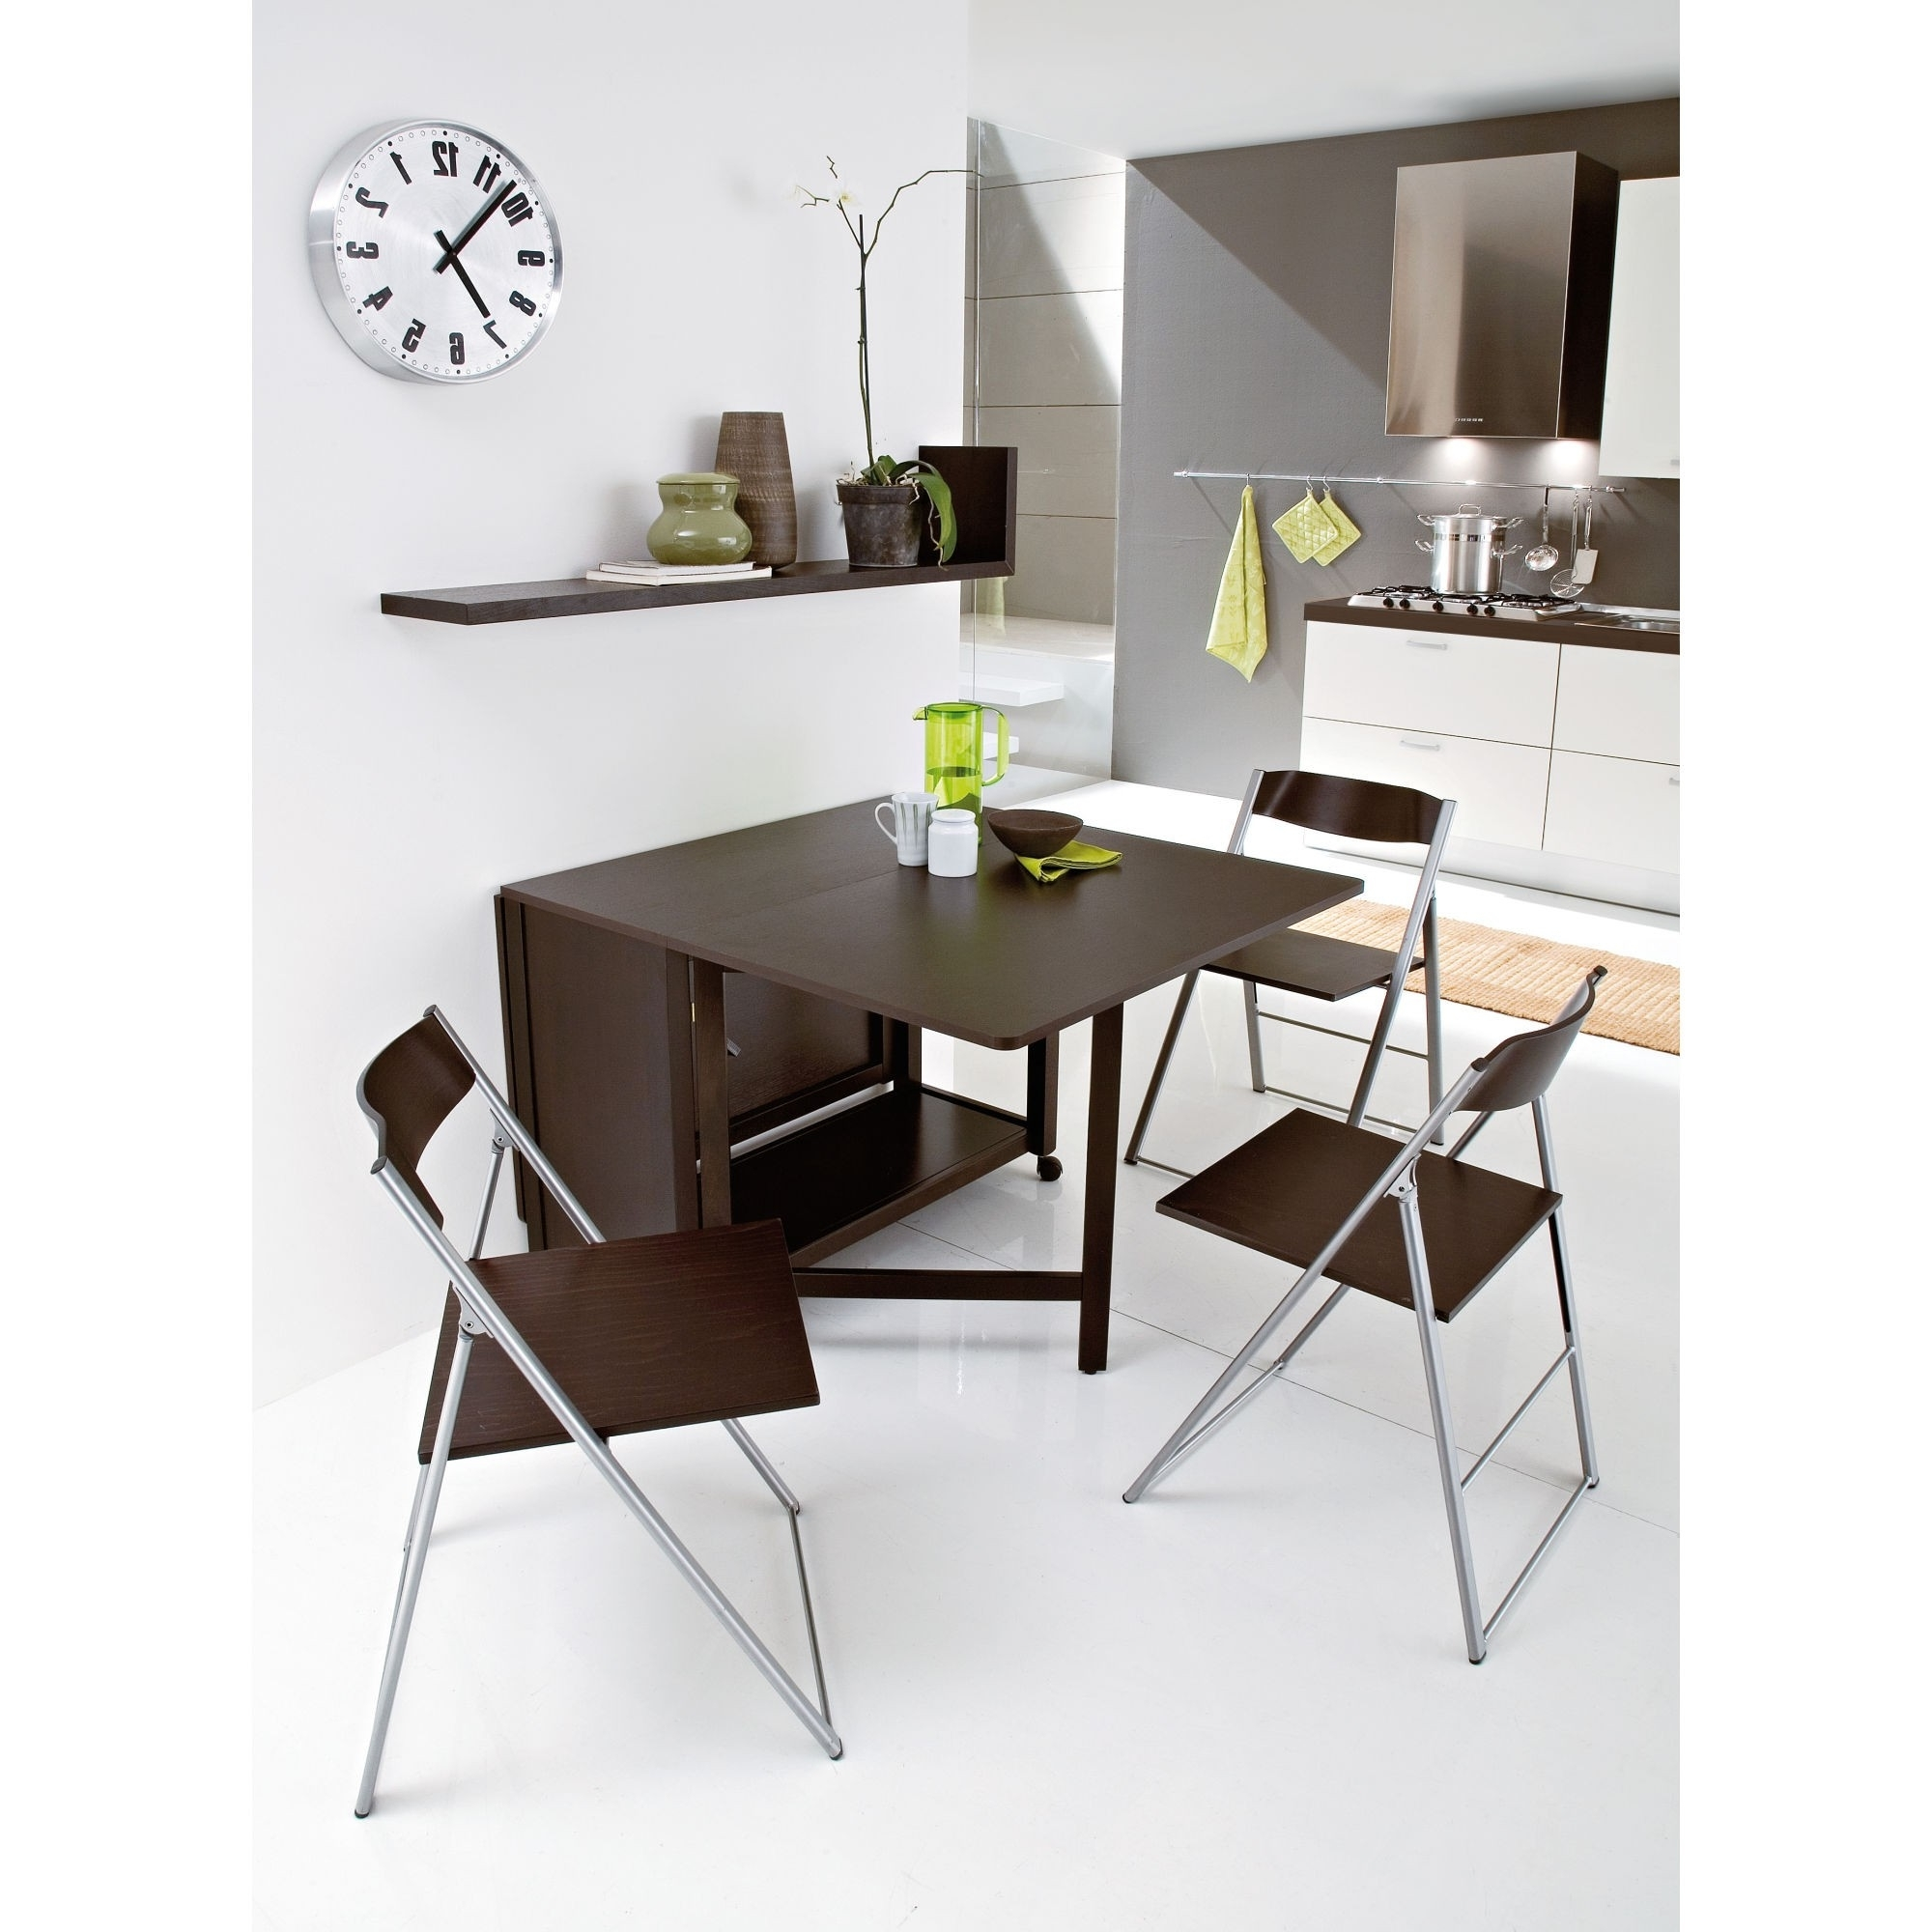 Modern Folding Wood And Metal Furniture For Dining Area (View 15 of 25)